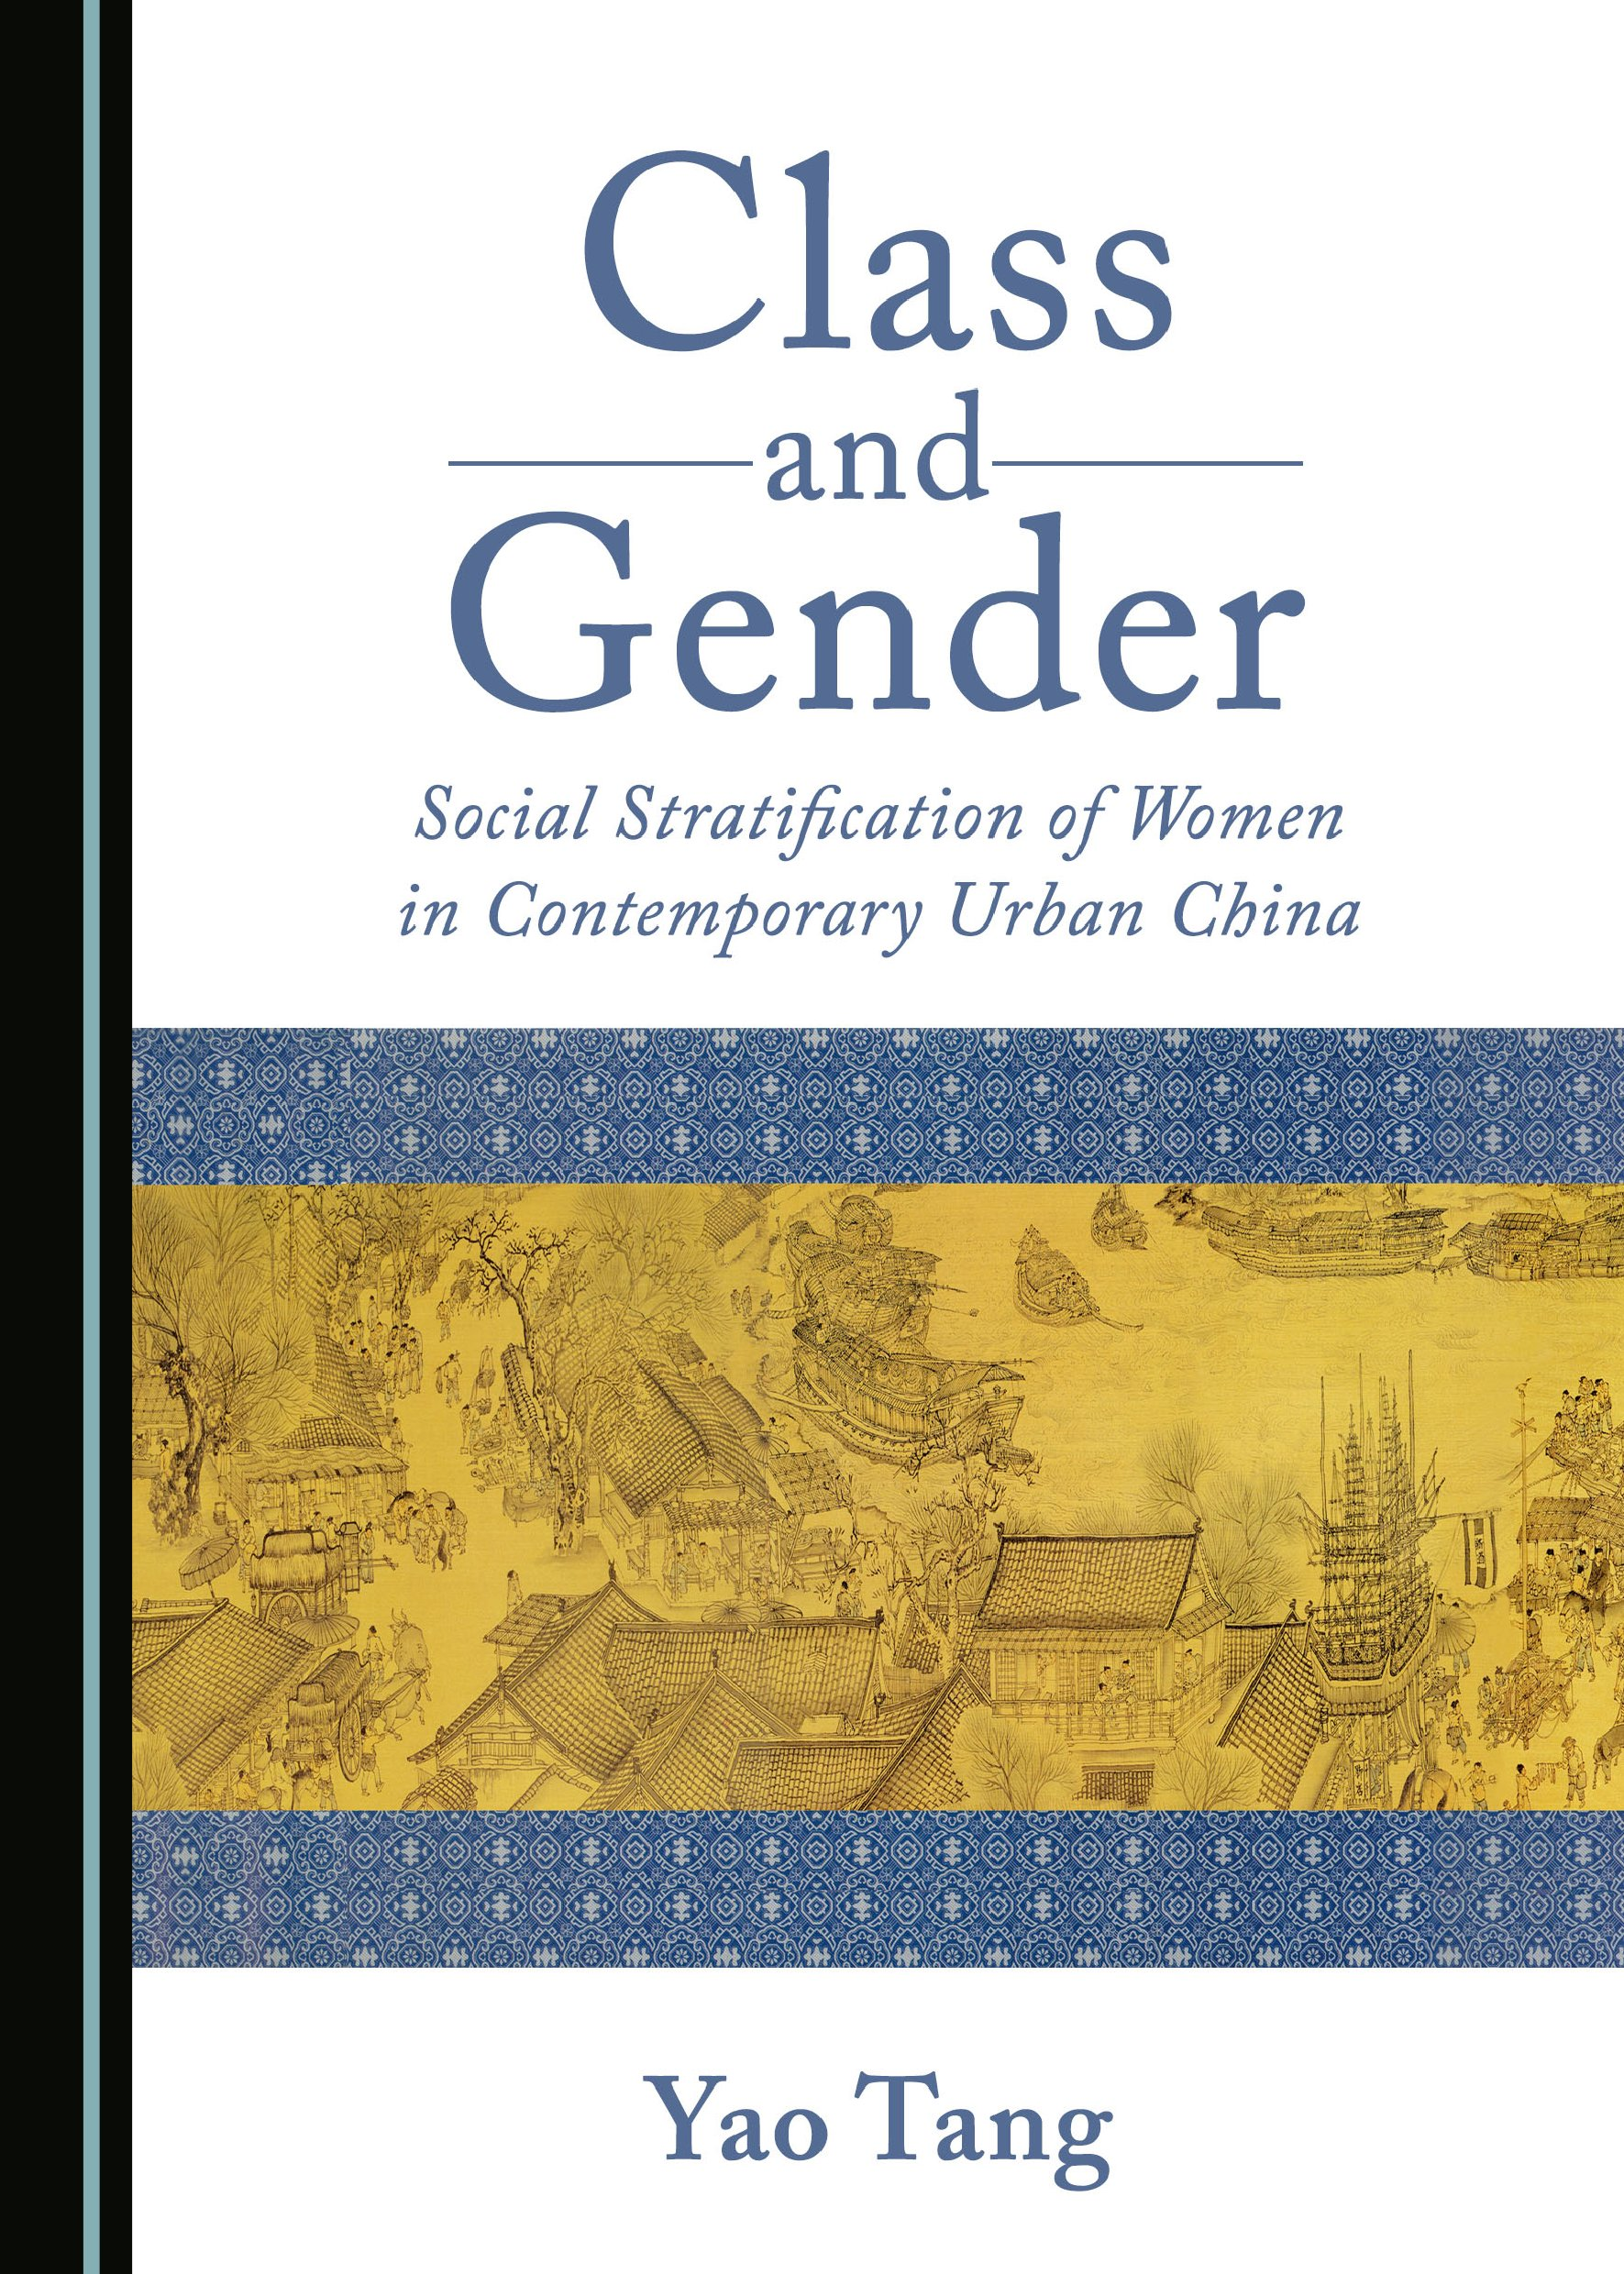 Class and Gender: Social Stratification of Women in Contemporary Urban China